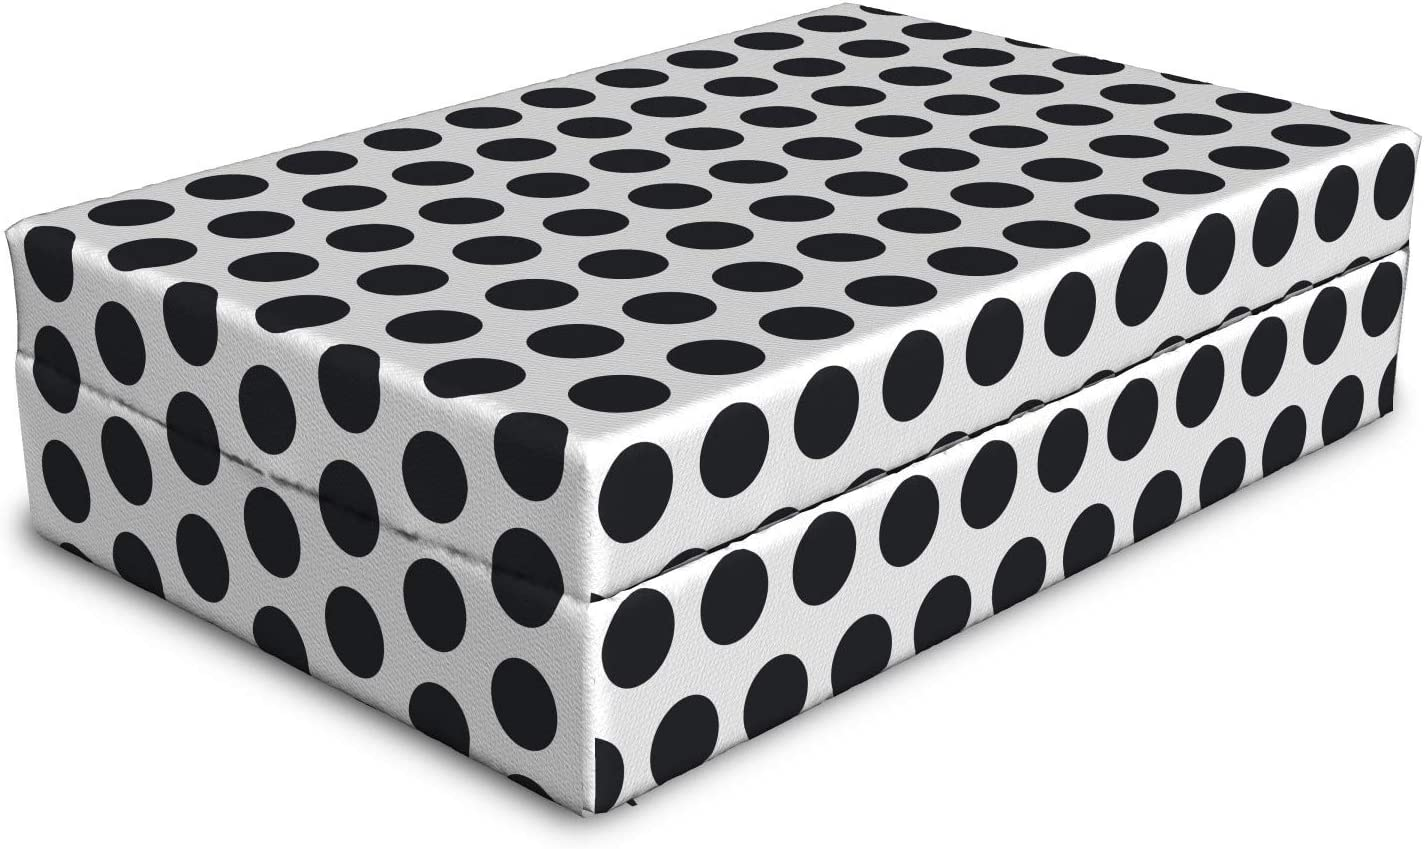 Ambesonne Abstract Pet Bed Geometric Rapid rise Dots Price reduction Polka Large Circular